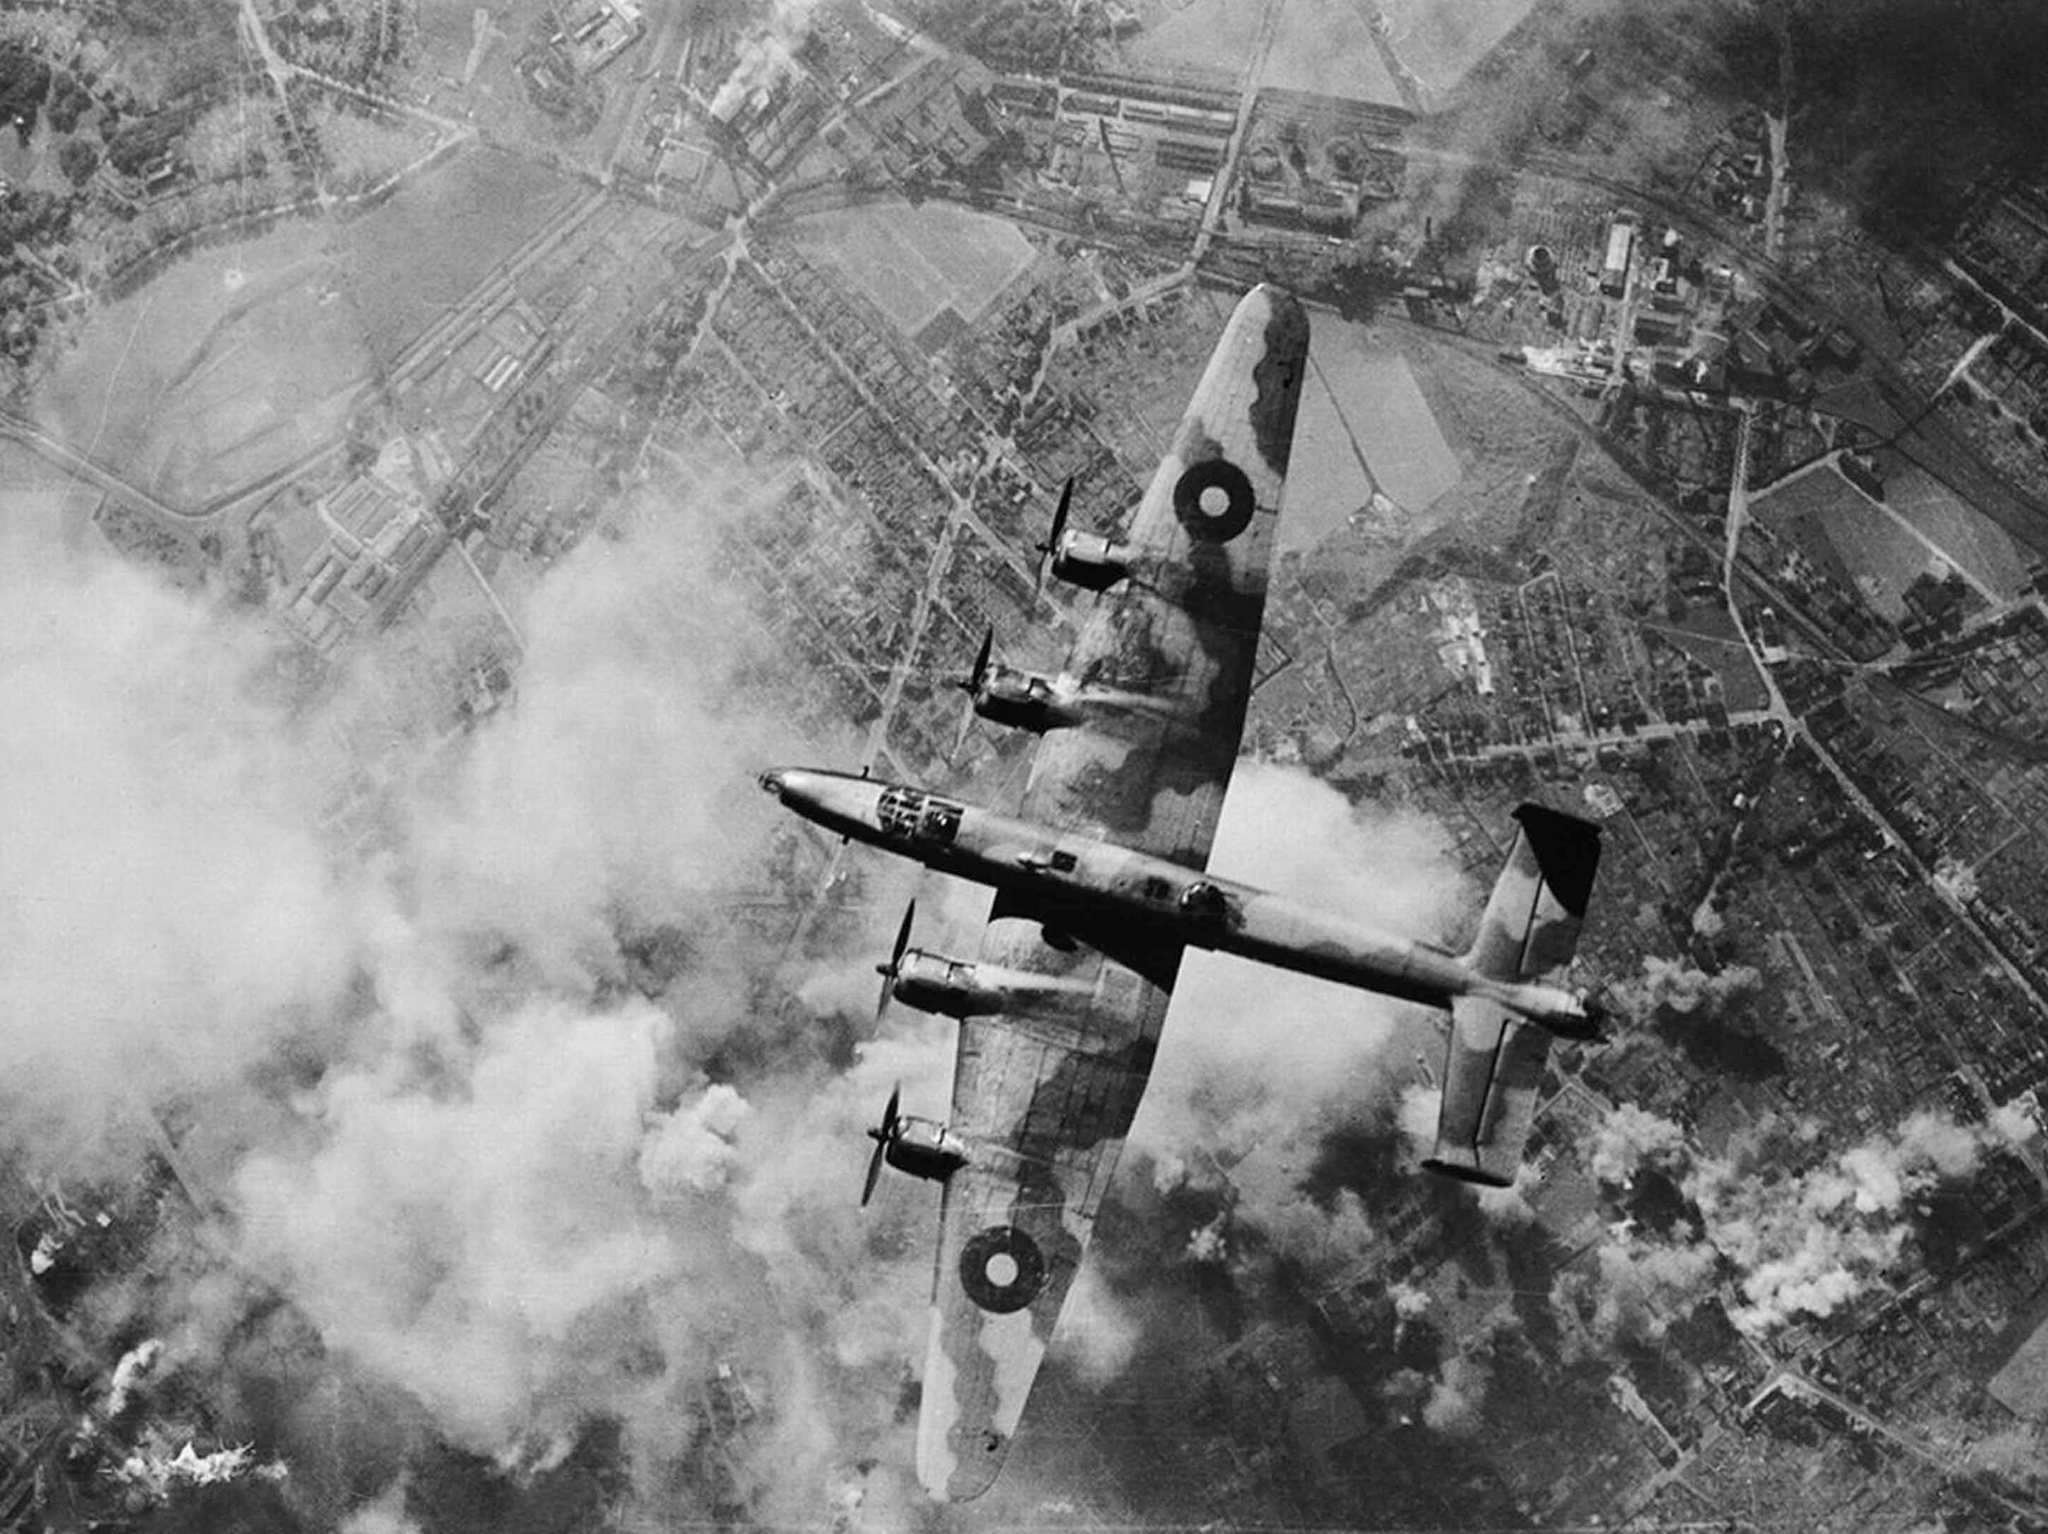 Bomber Command over Germany during the Second World War. (Supplied / Imperial War Museum)